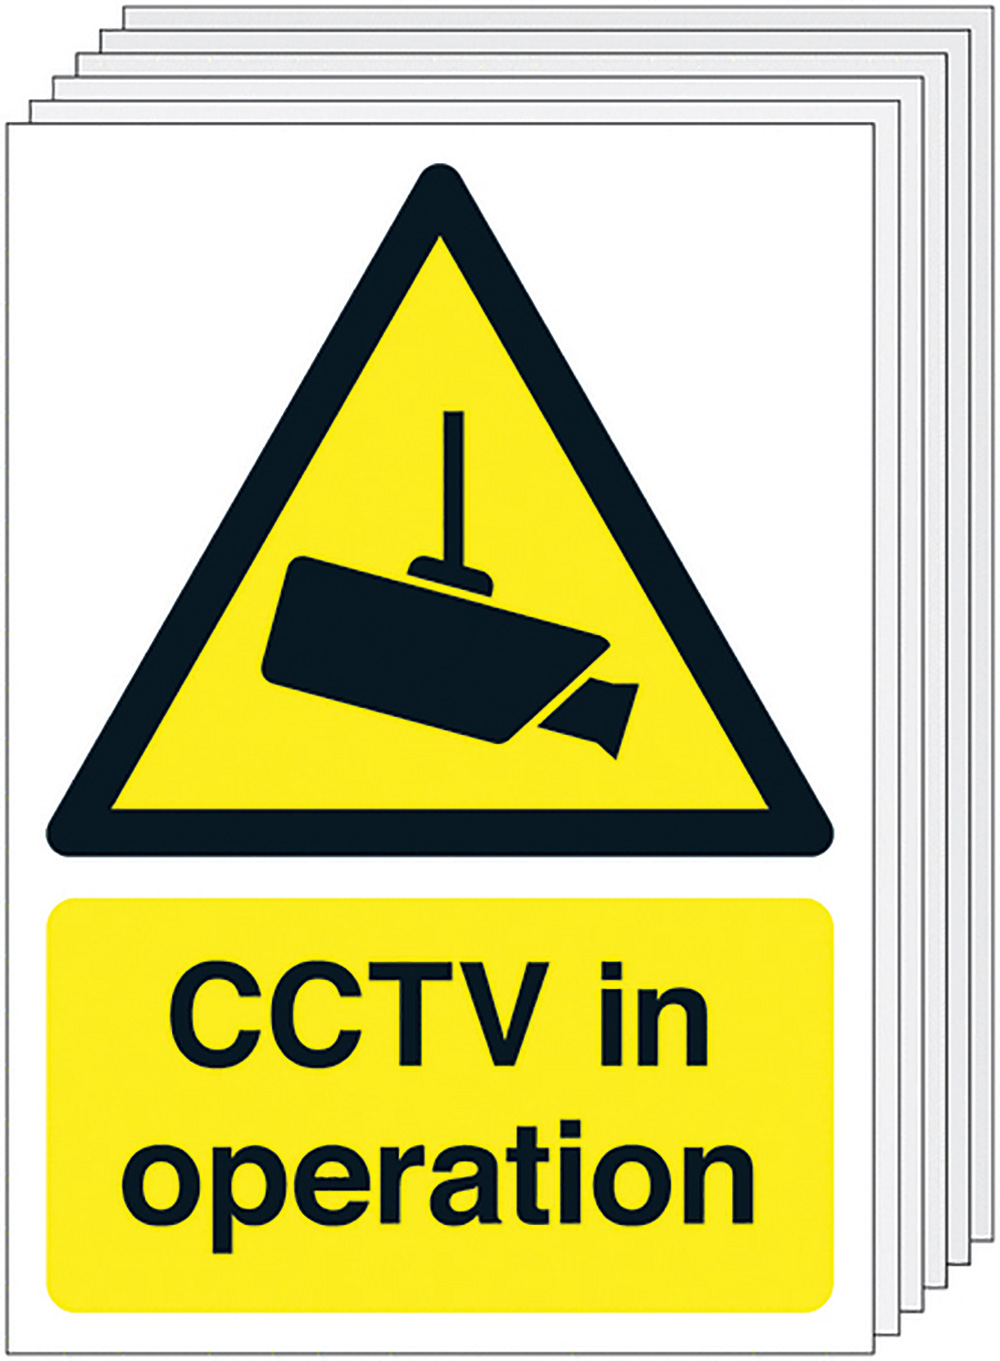 CCTV in Operation  420x297mm 1.2mm Rigid Plastic Safety Sign Pack of 6